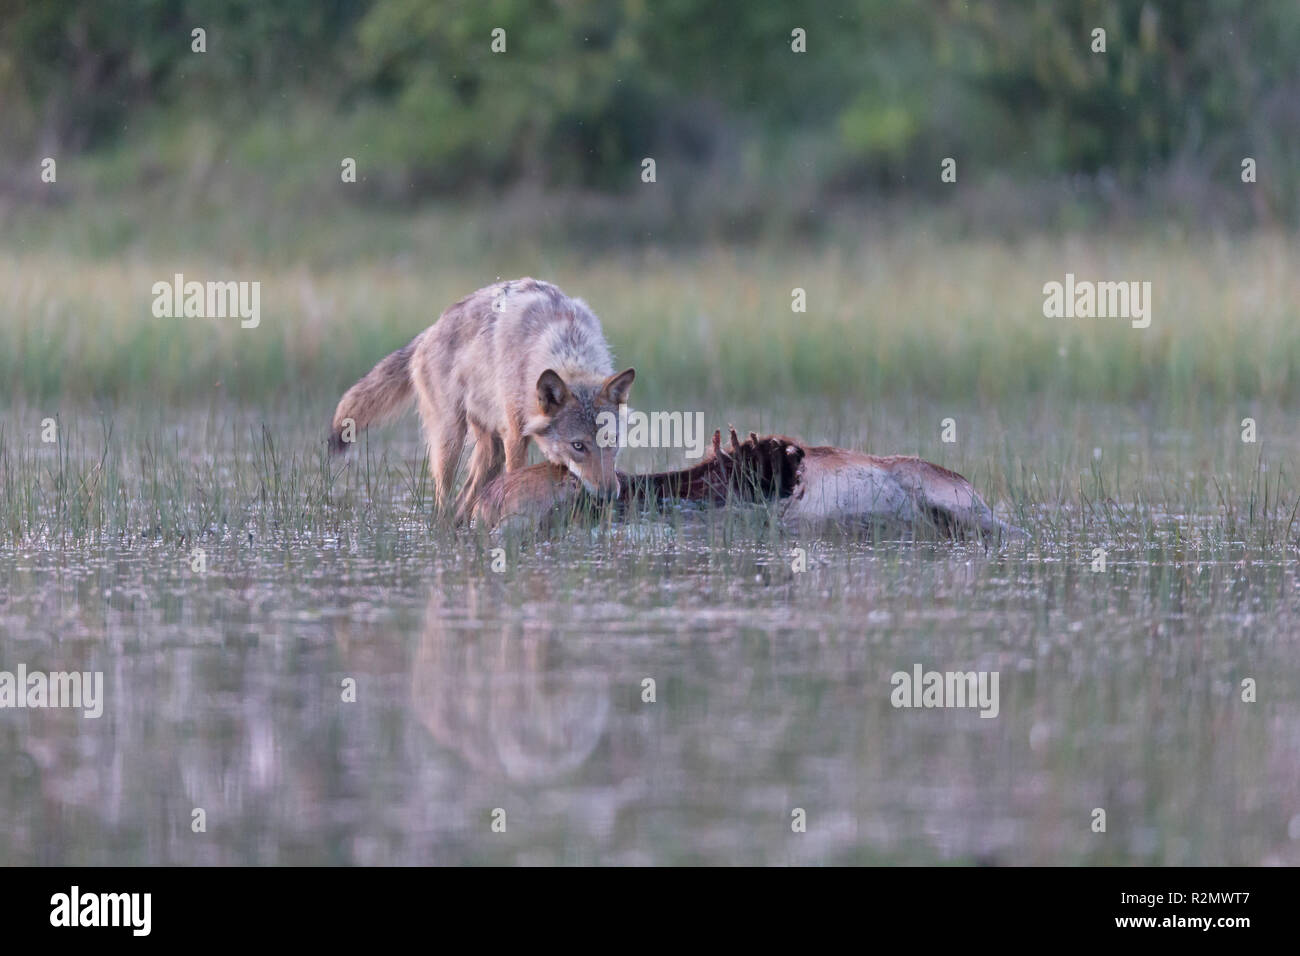 Wolf in the wild, prey, eat - Stock Image